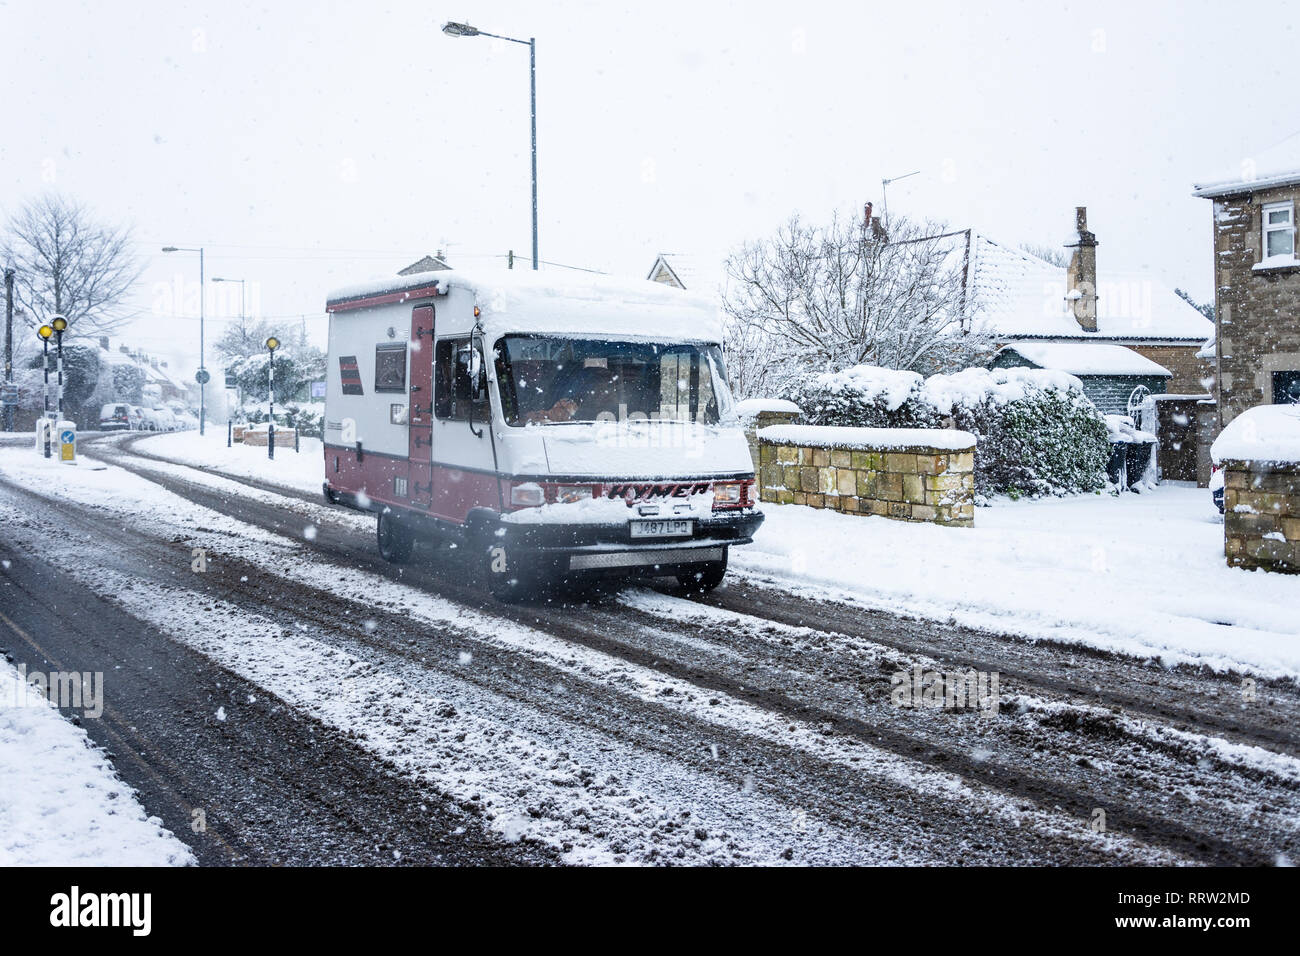 Bradford on Avon, UK, February 1st 2019: A Hymer campervan driving through snowy conditions Campervan out driving in snowy conditions with slush cover Stock Photo